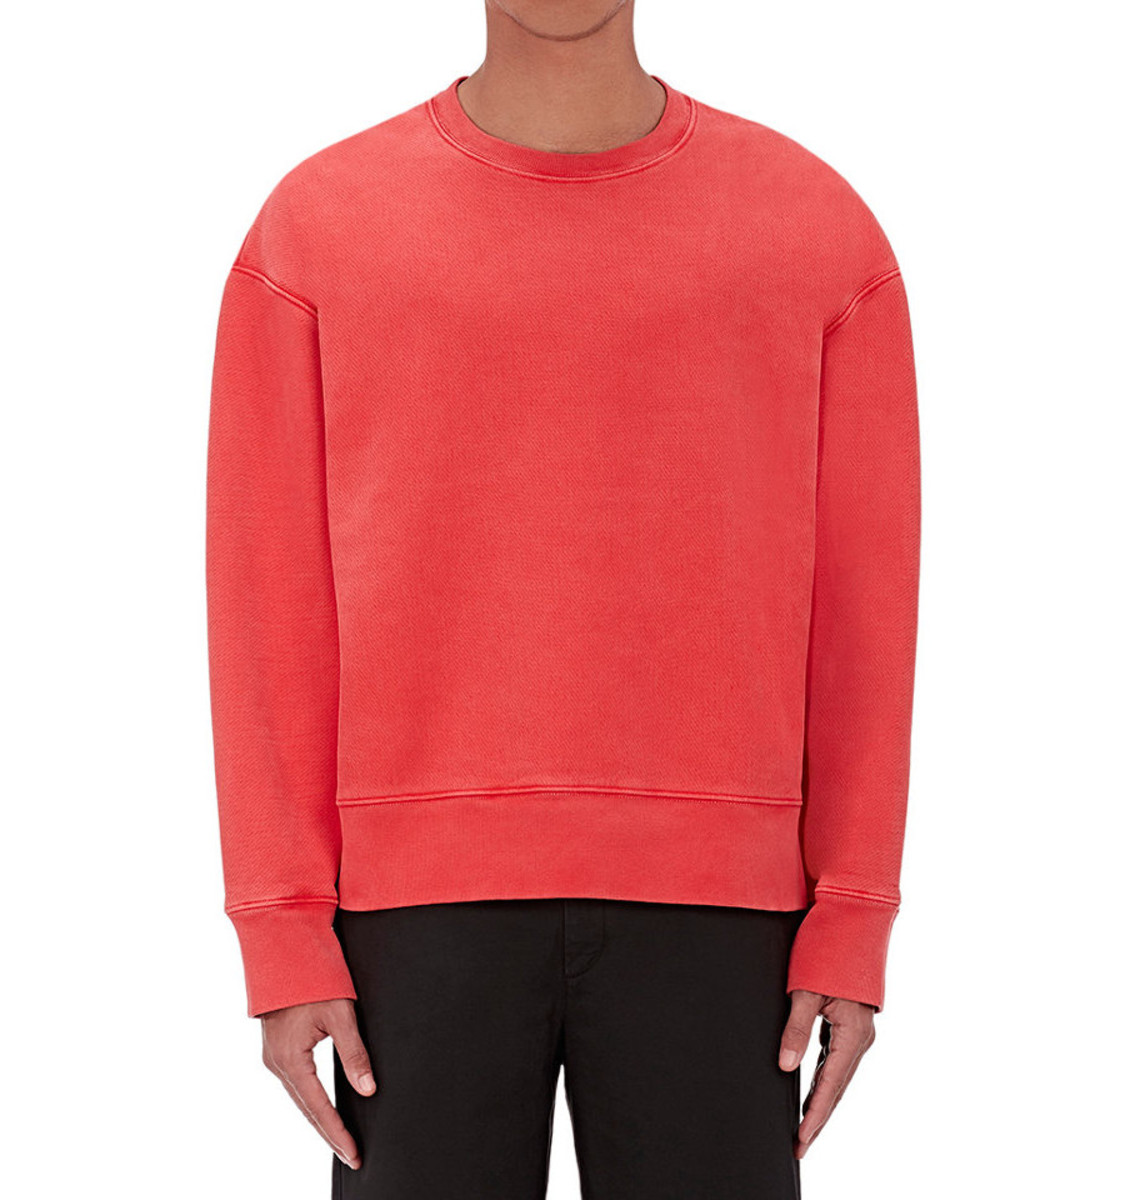 yeezy-season-3-diagonal-fleece-sweatshirt.jpg